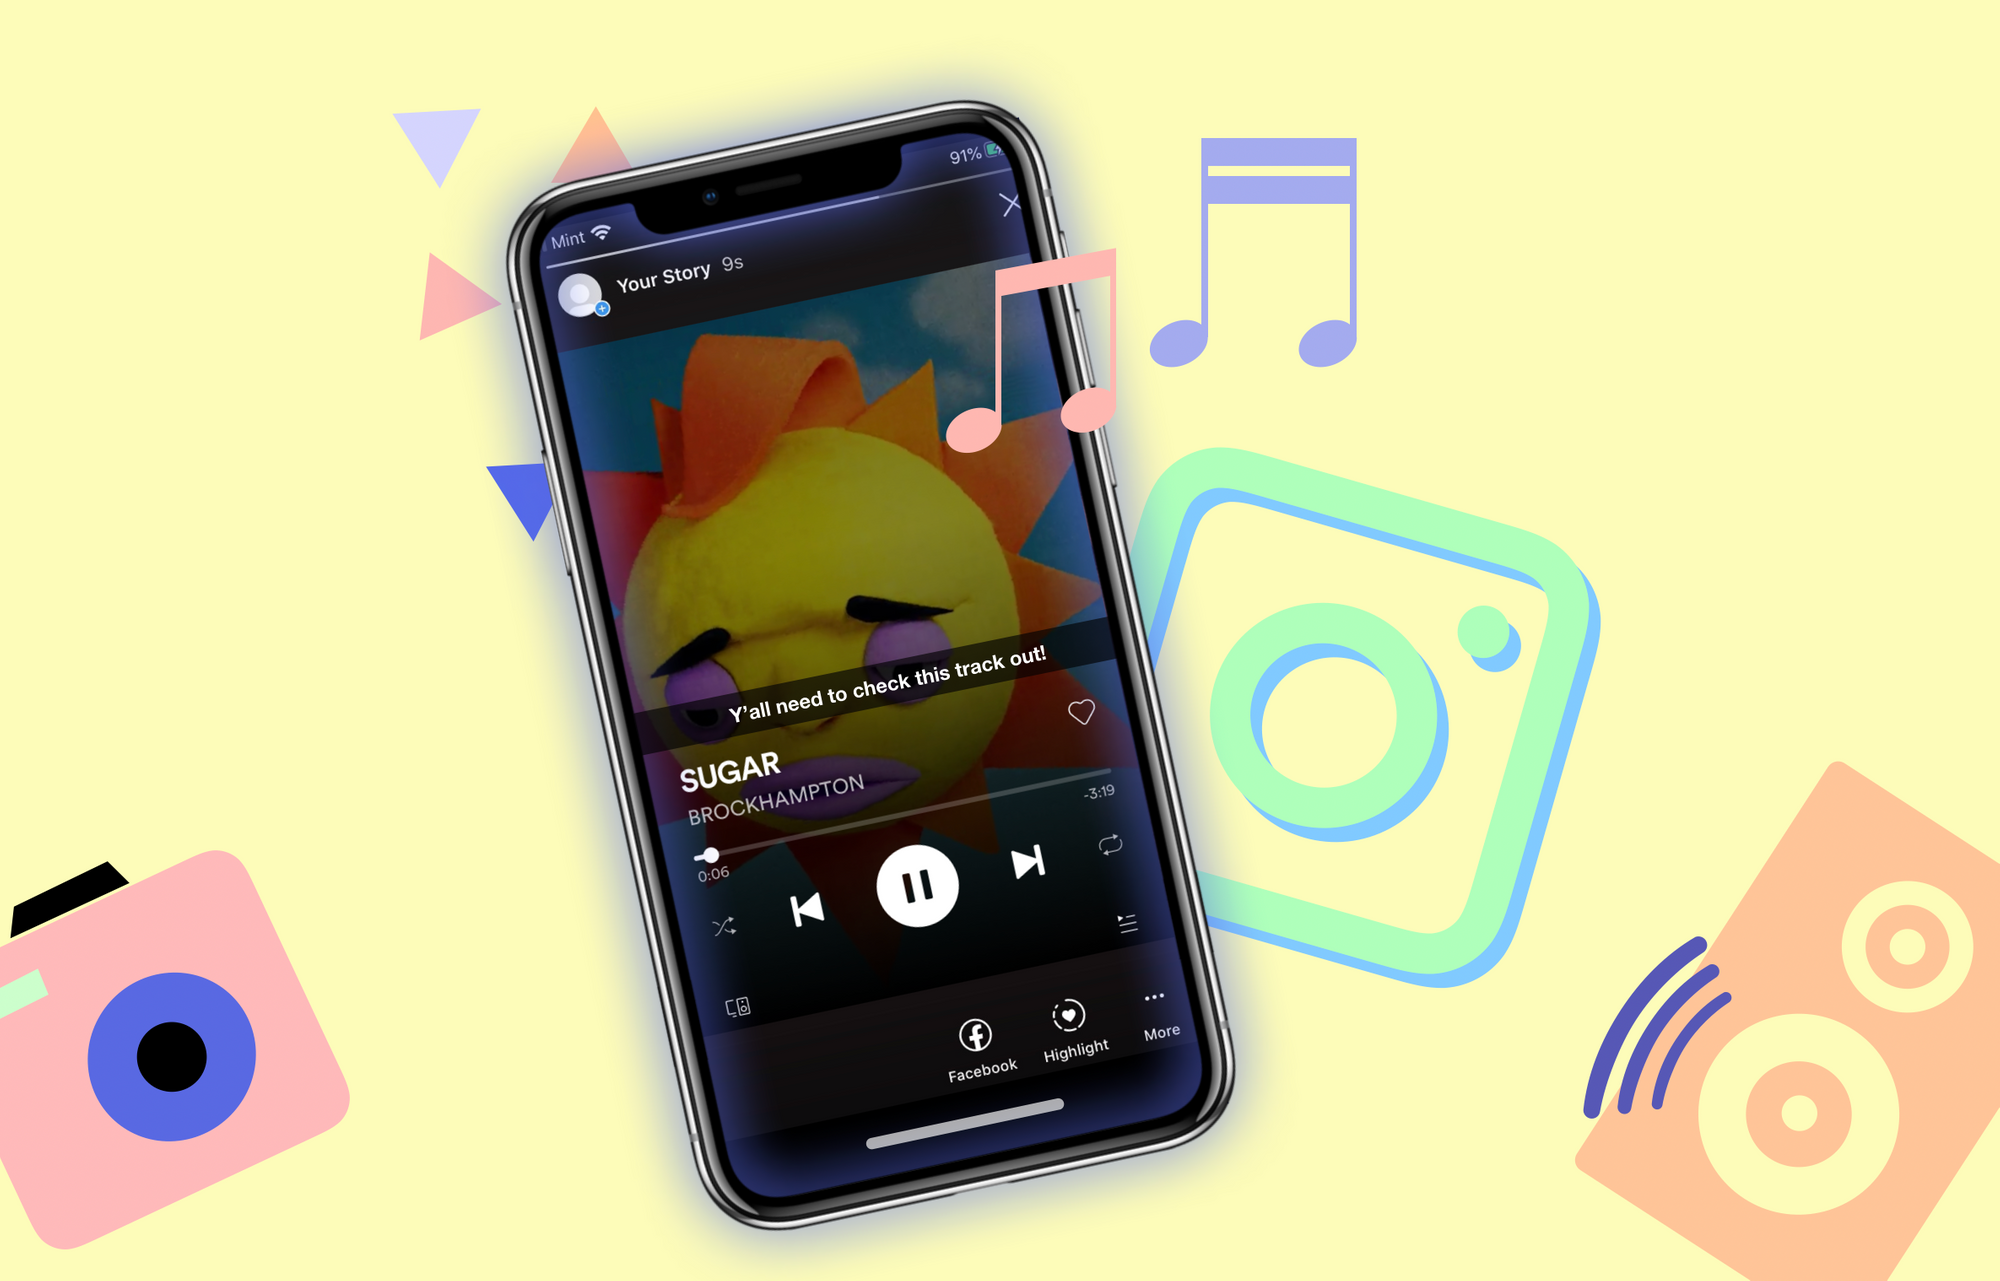 How to Add Any Music to Your Instagram Stories